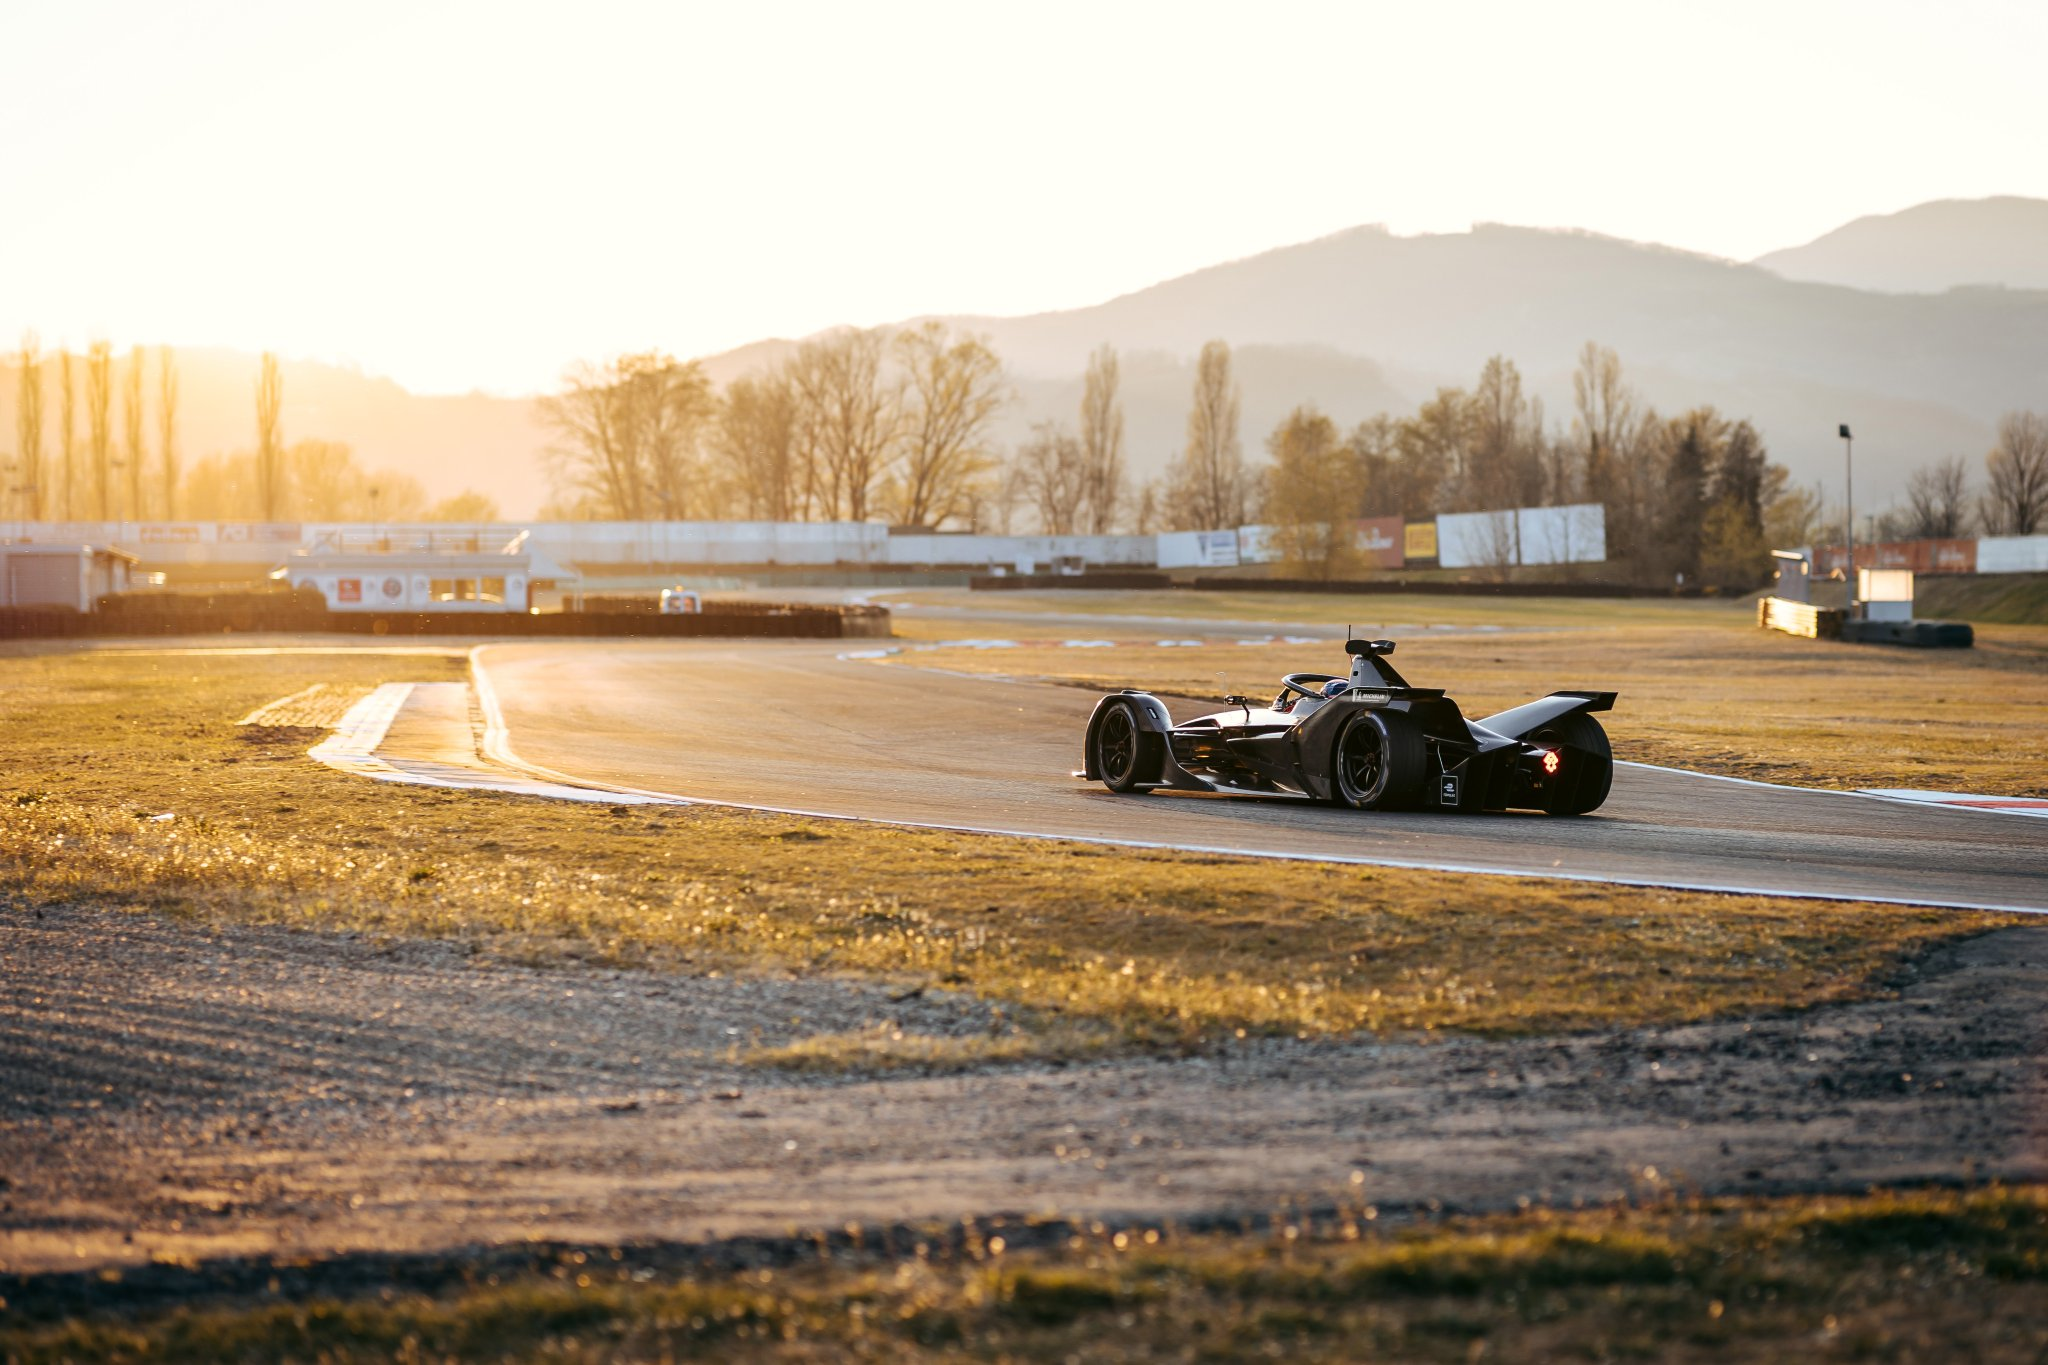 Mercedes-Benz-EQ-Silver-Arrow-01-first-Test-Varano-Formula-E